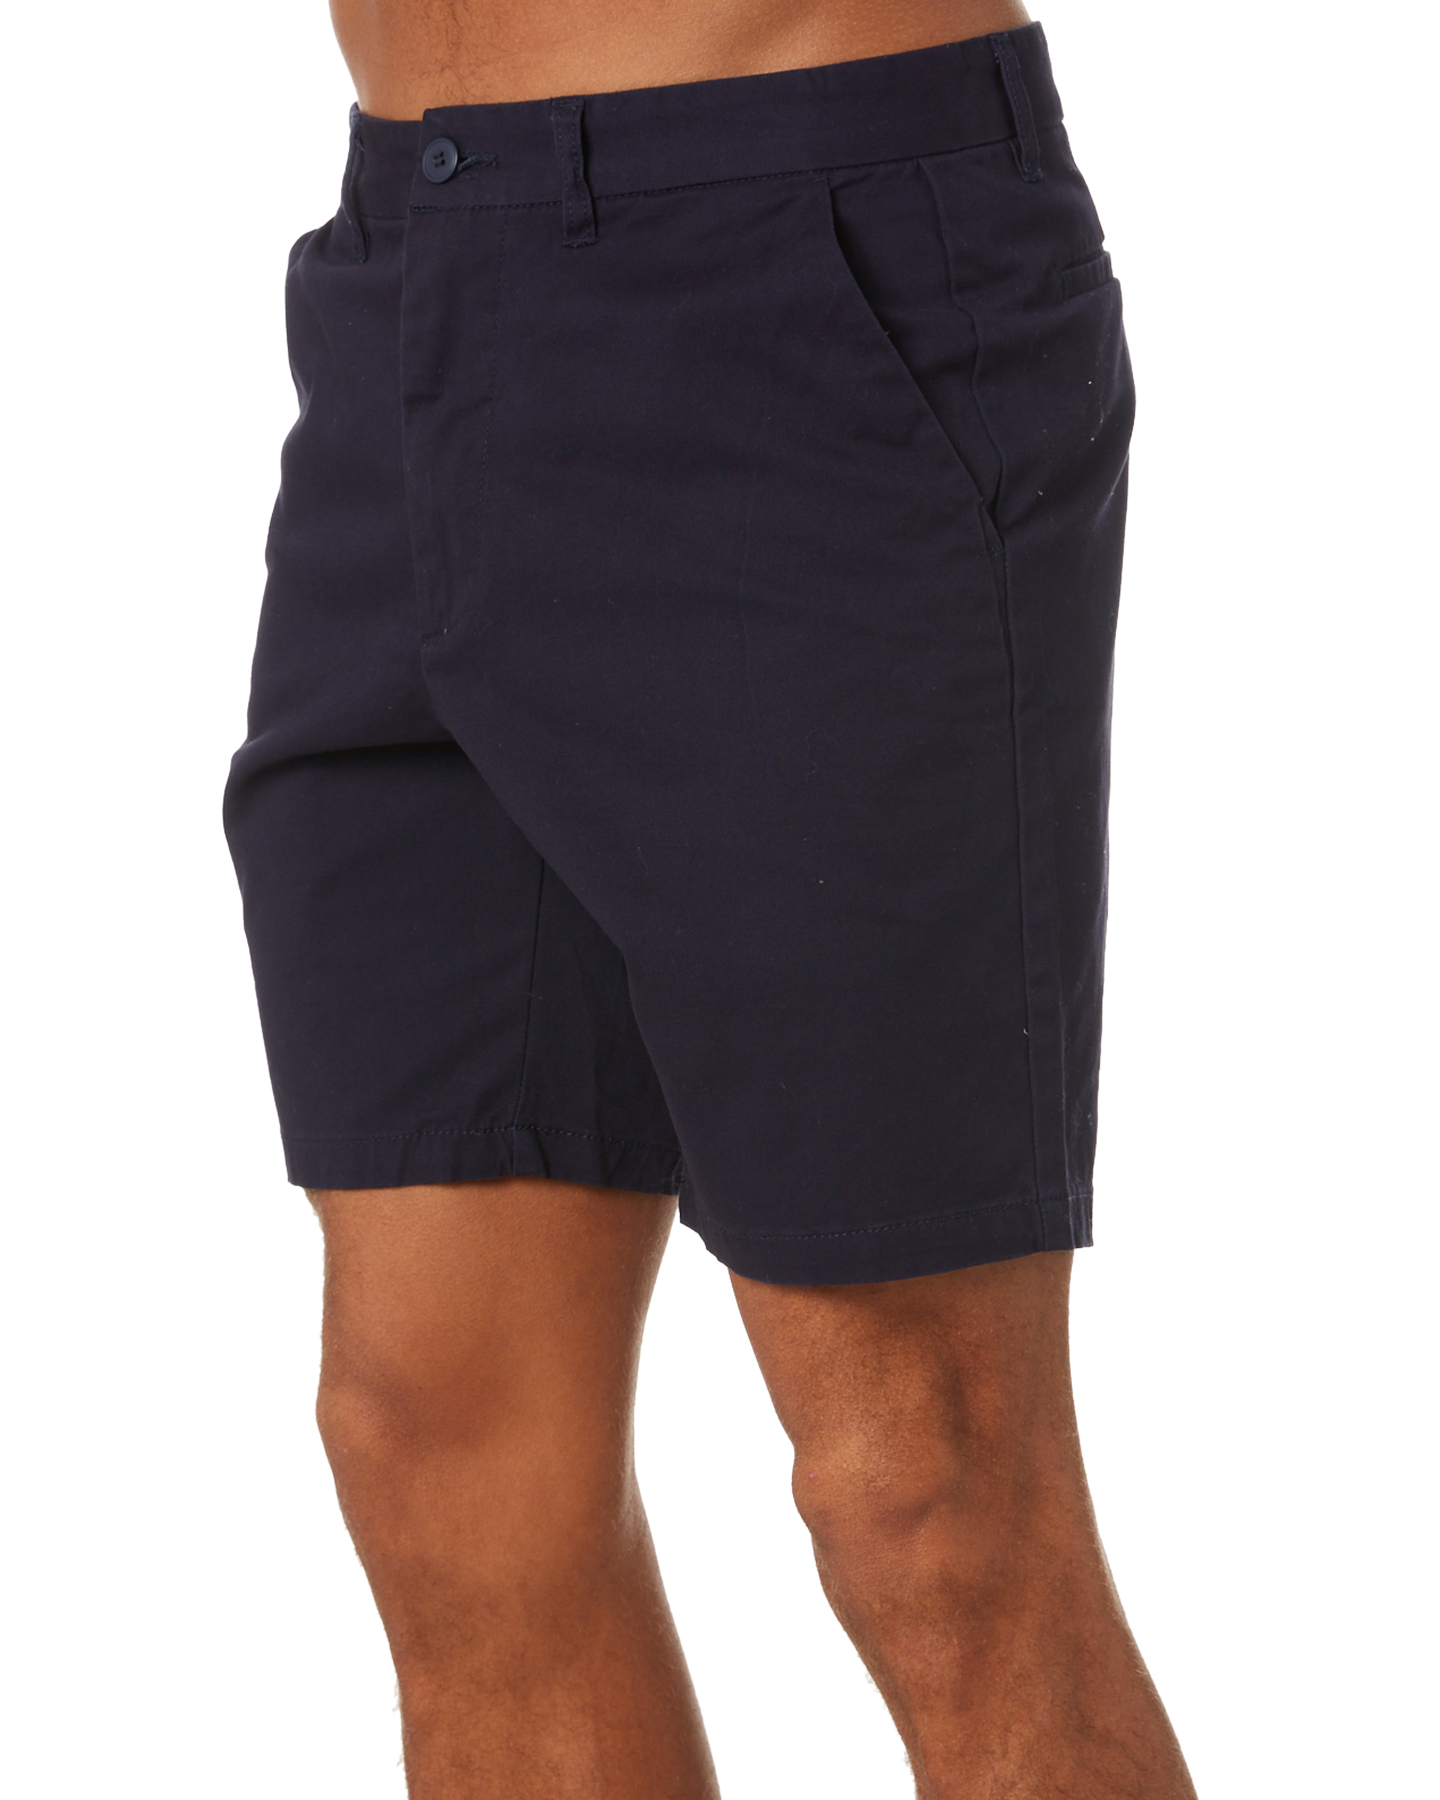 New-Swell-Men-039-s-Dandy-Mens-Chino-Short-Cotton-Fitted-Elastane-Blue thumbnail 21